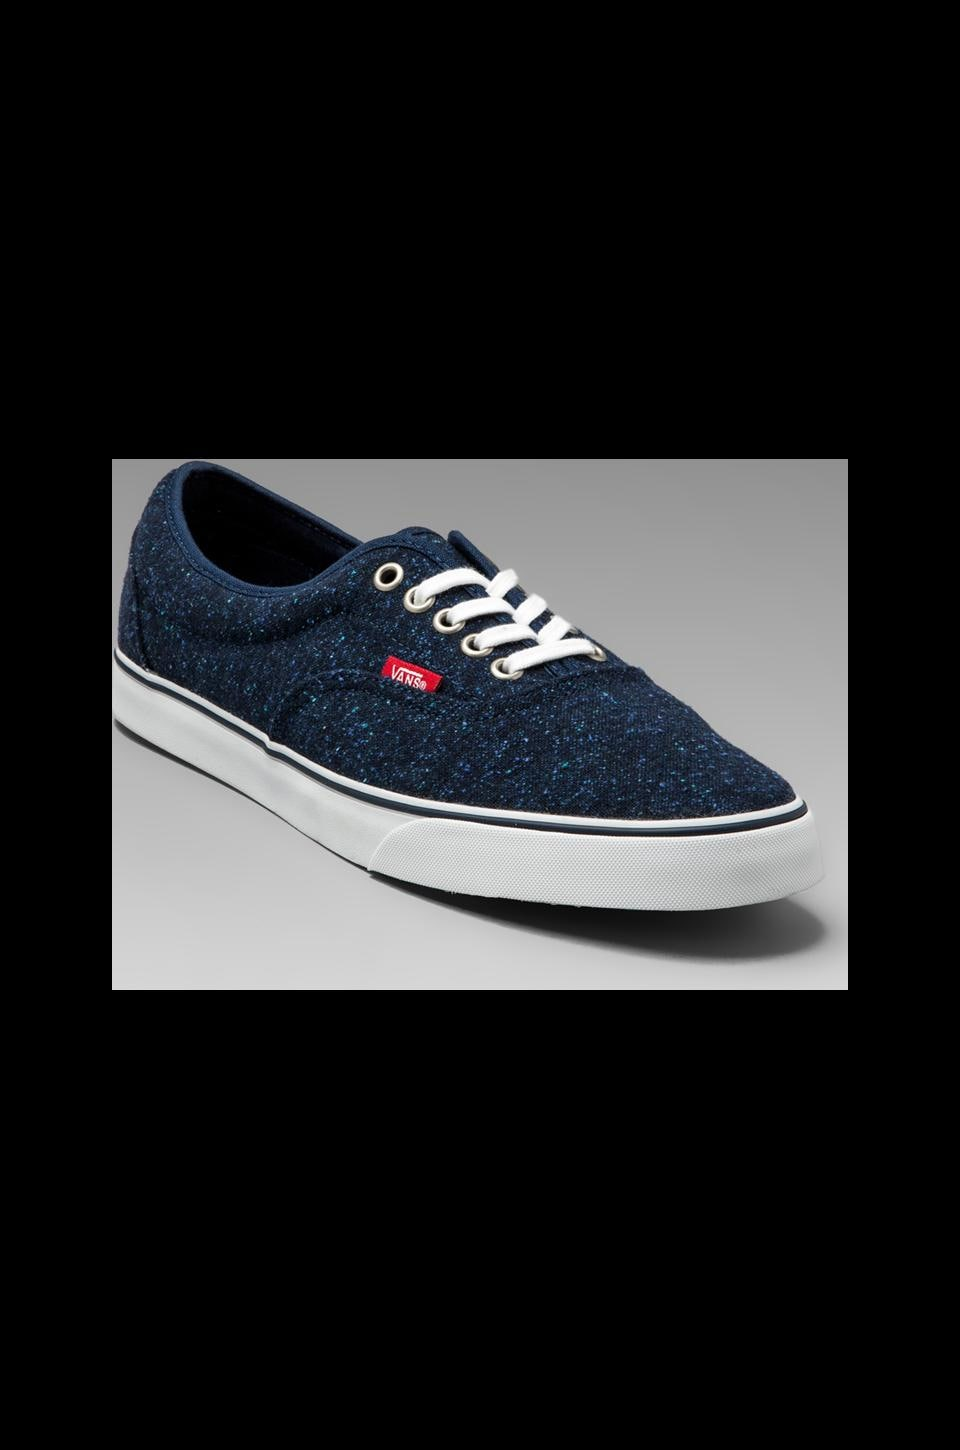 Vans California Era 59 in Dress Blues